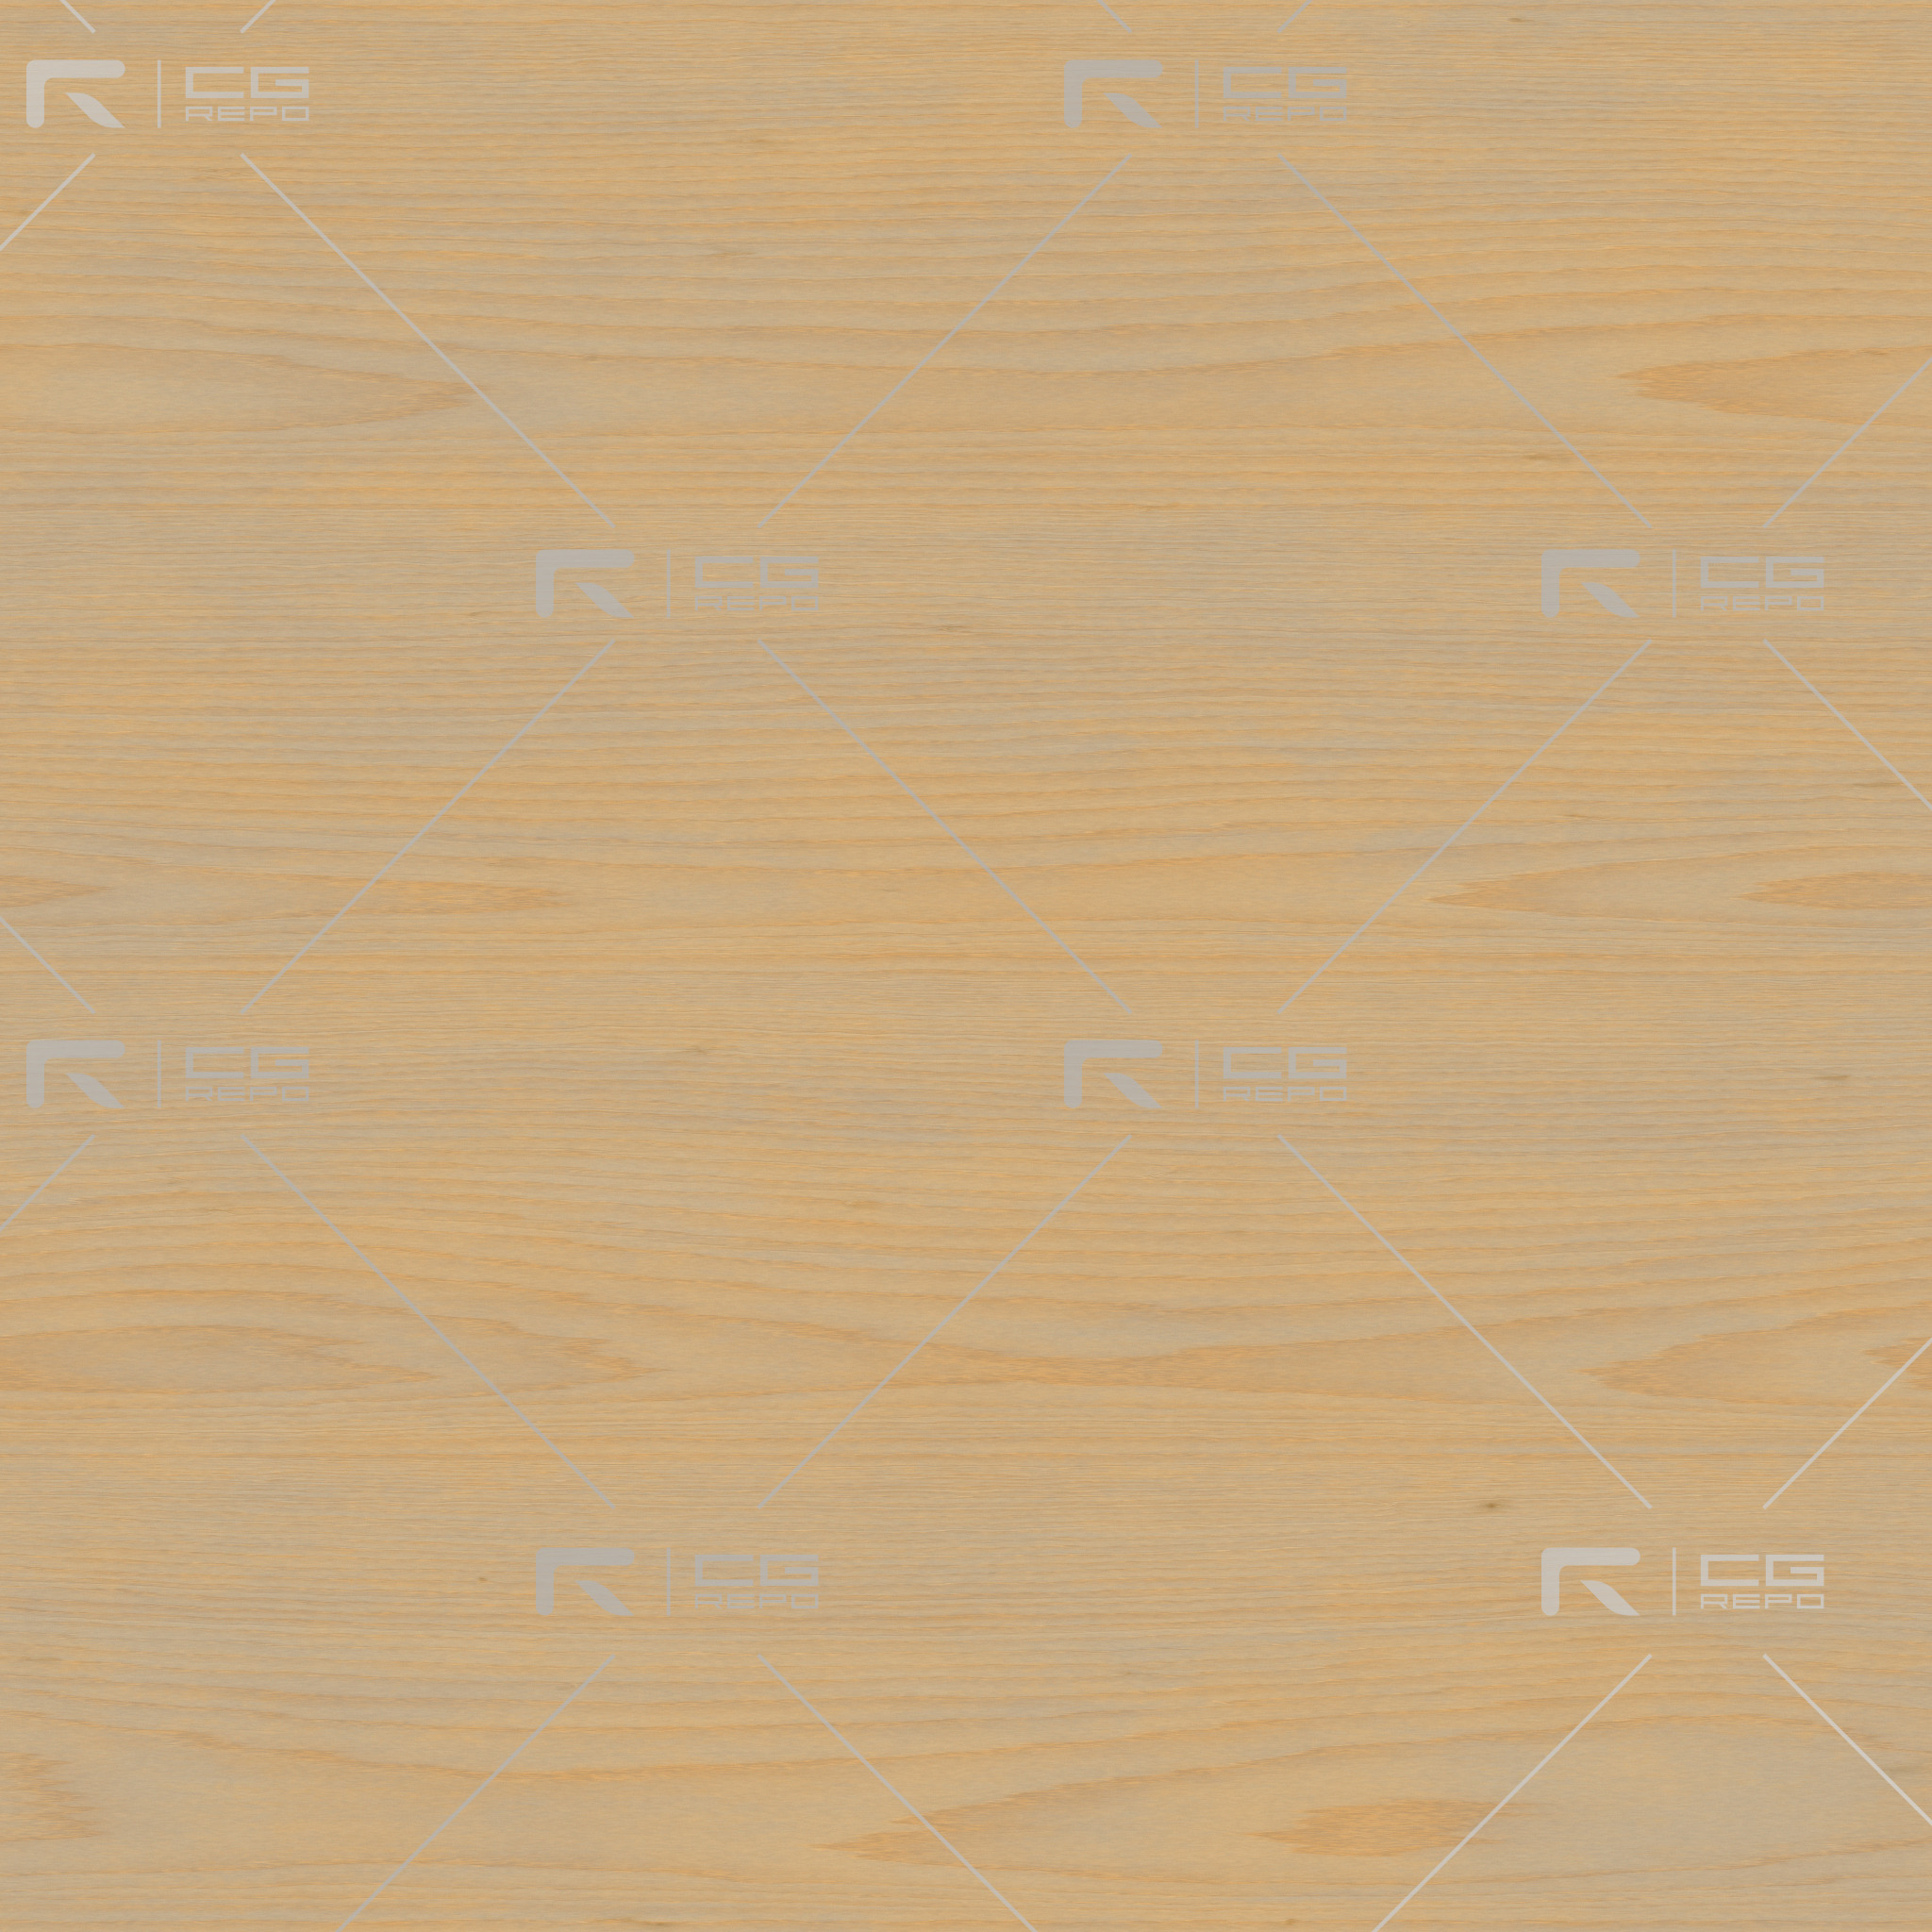 Birch - PlyWood - Flat BaseColor Texture